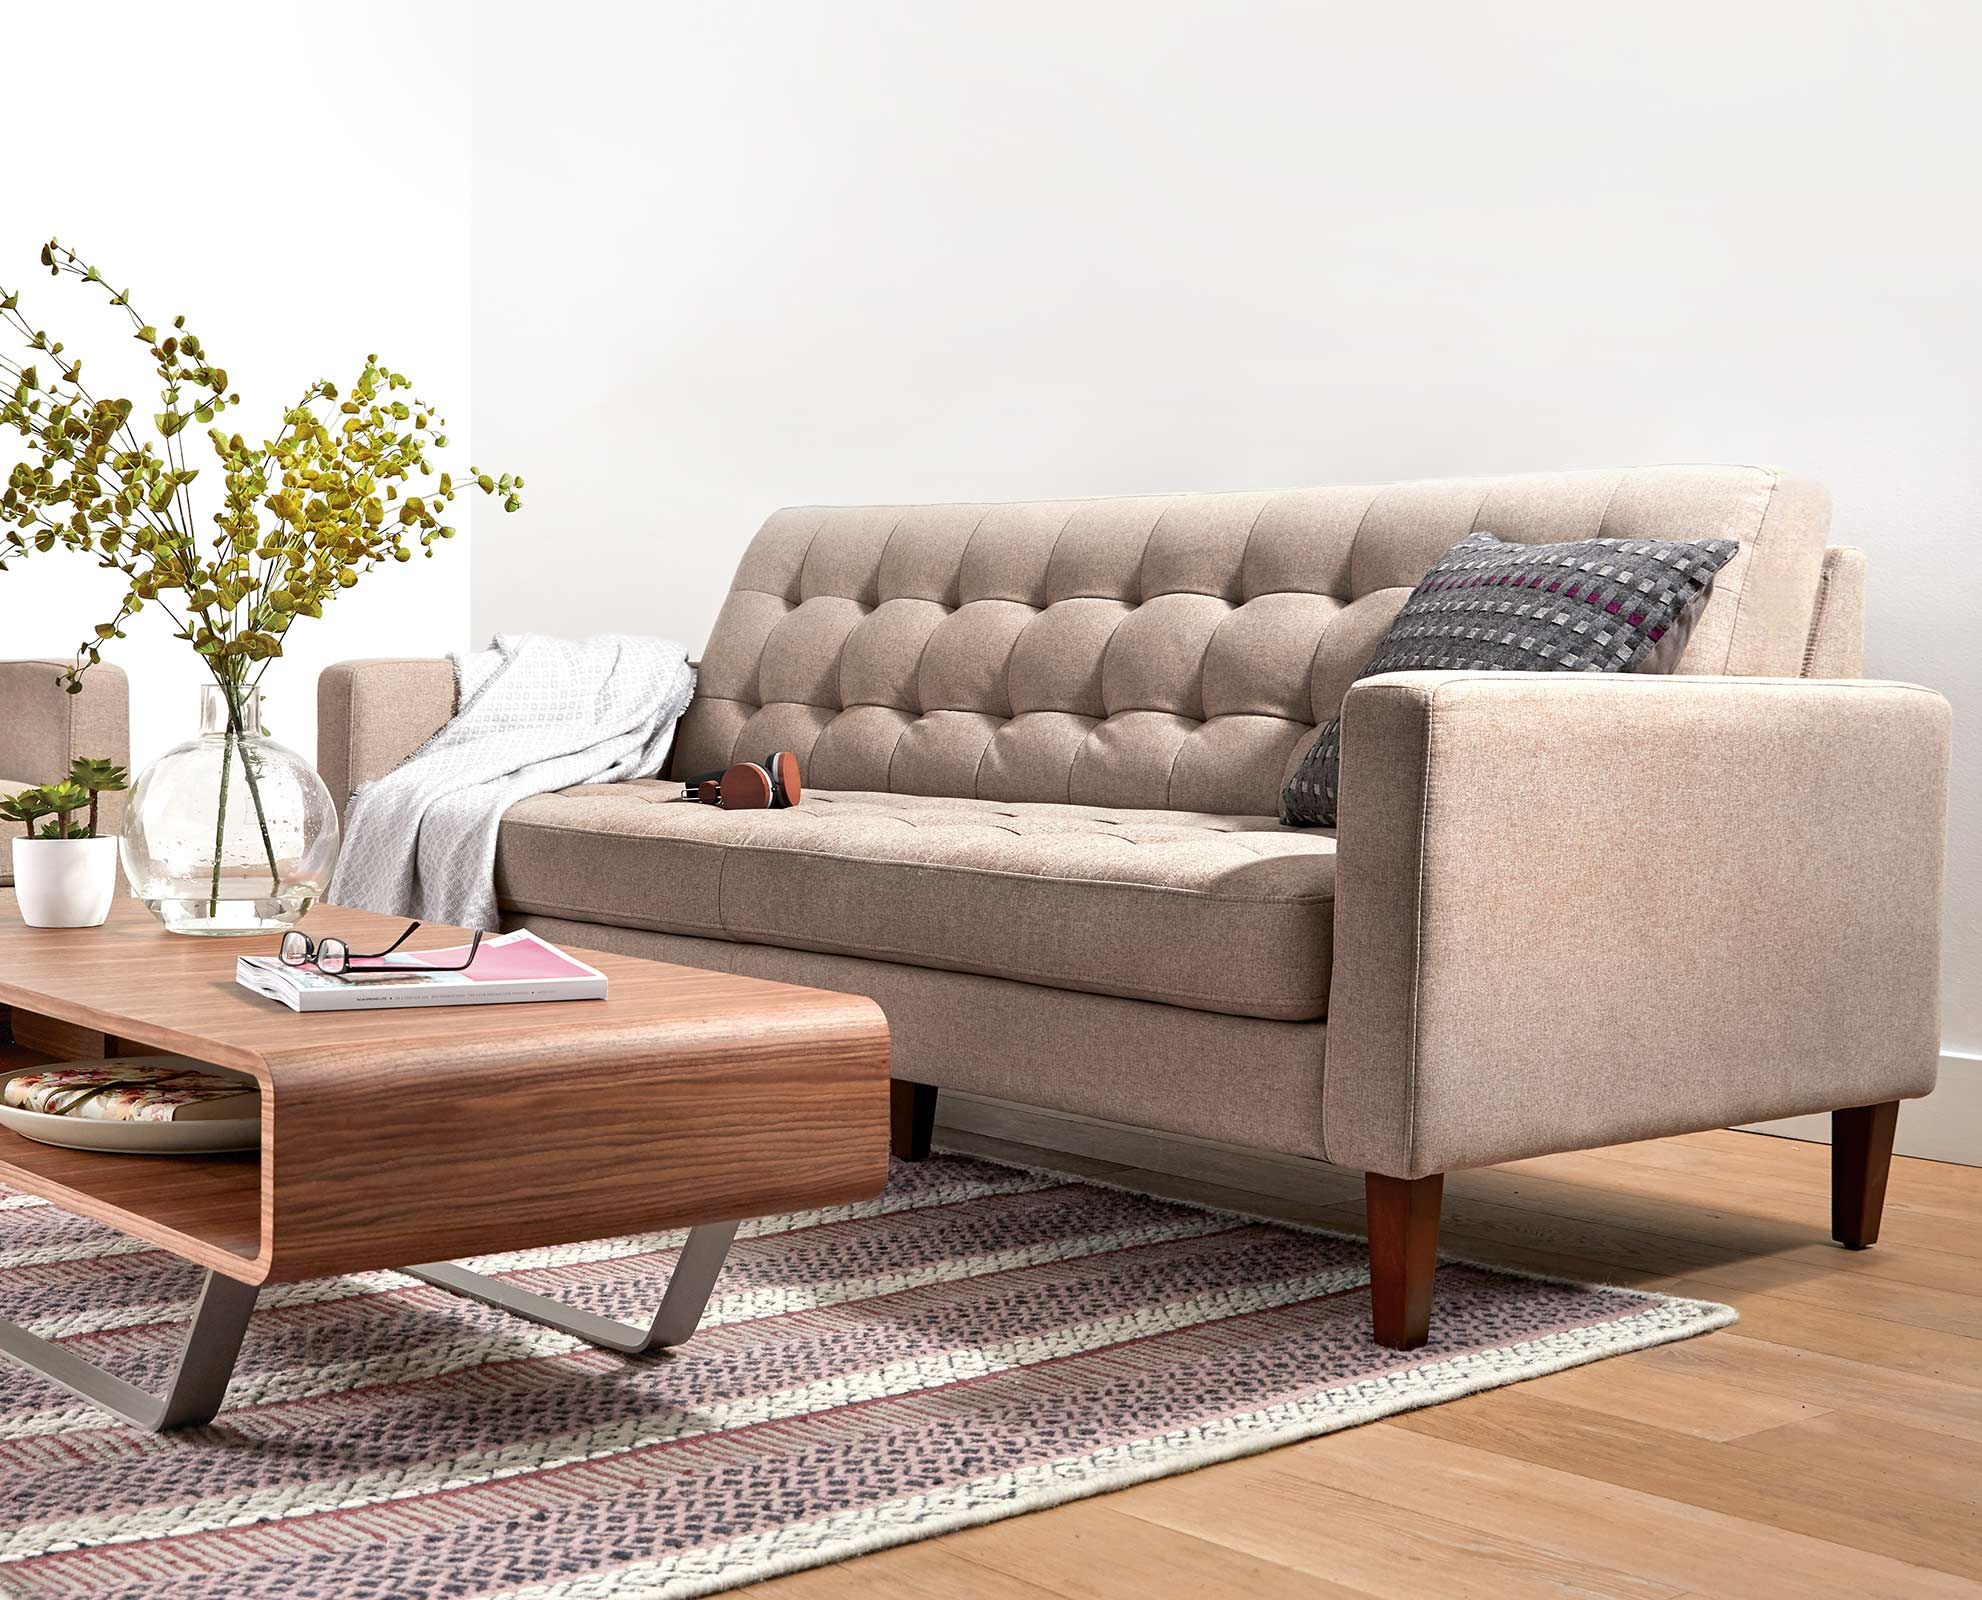 Laura Sofa By Scandinavian Designs Create A New Modern Feel For Your Living Room Wit Modern Couches Living Room Small House Furniture Bedroom Furniture Design #unique #living #room #sets